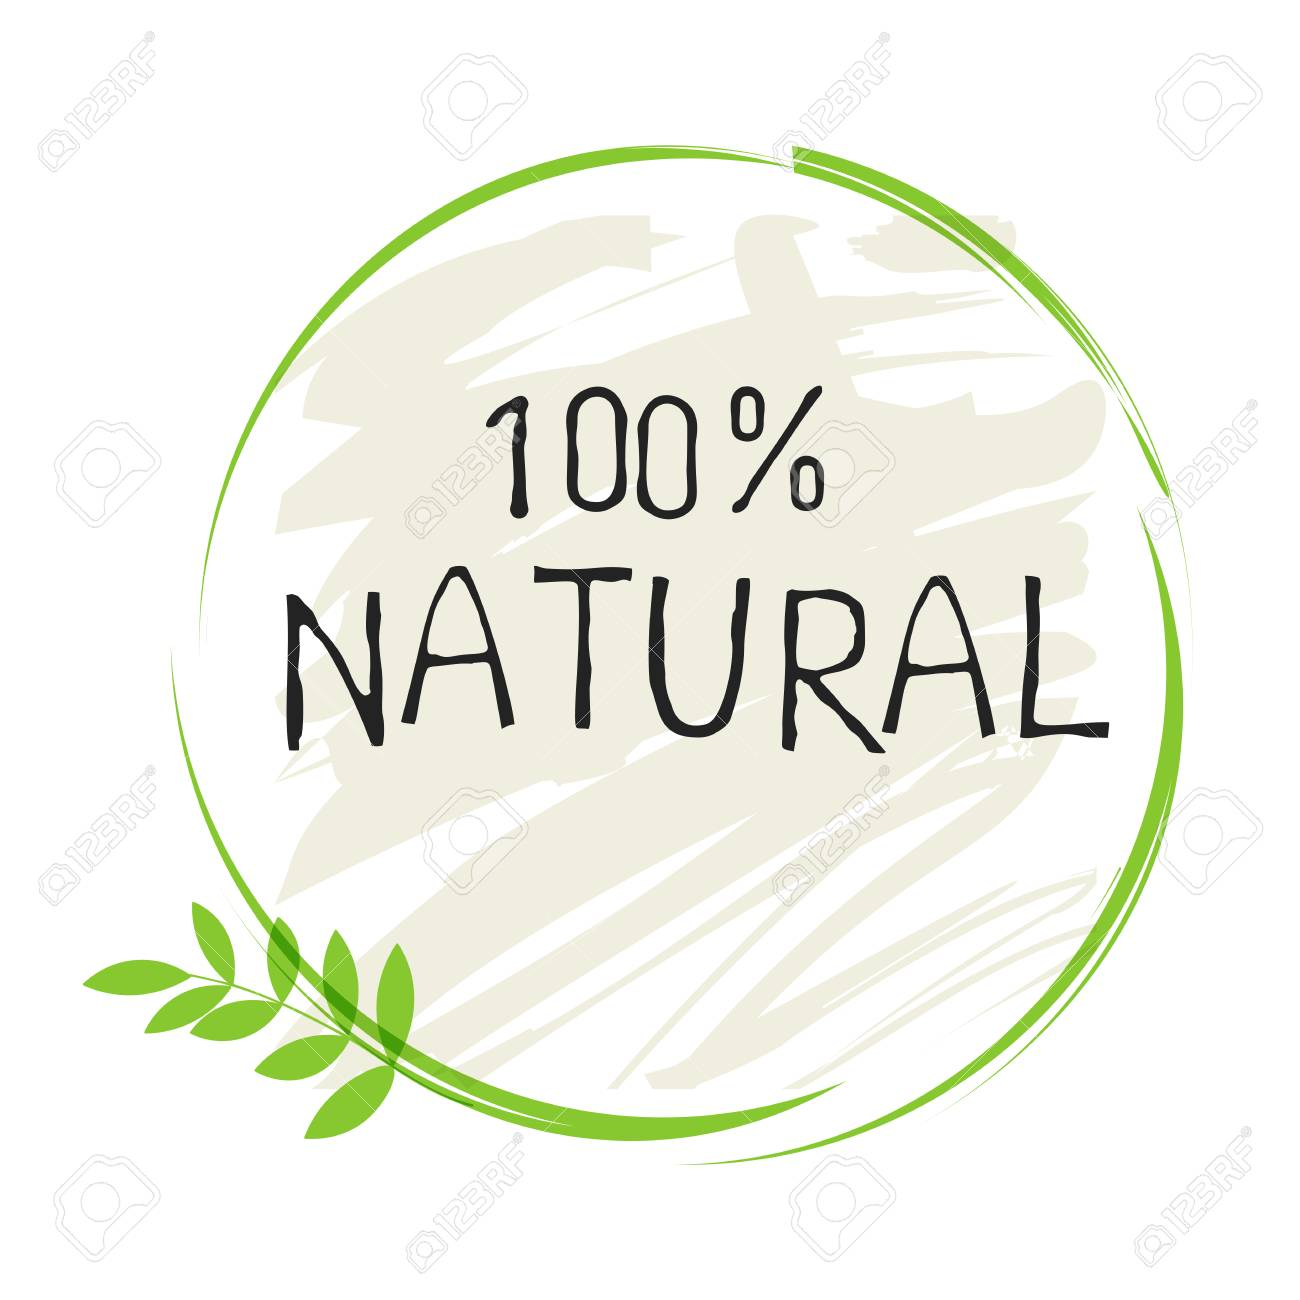 Natural product 100 bio healthy organic label and high quality product badges. - 110523156